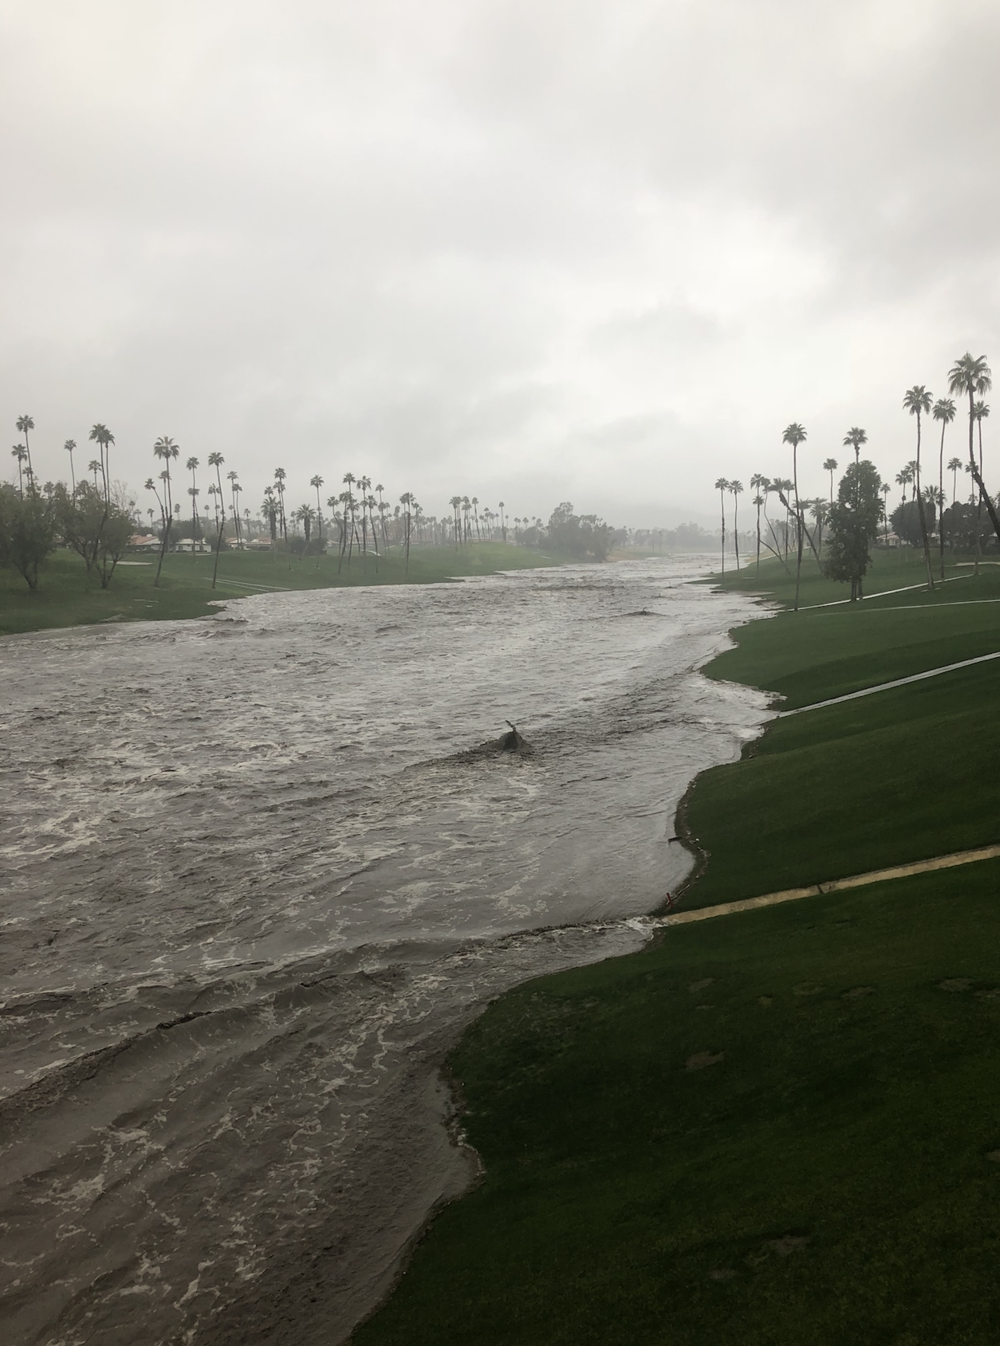 Whitewater River in Palm Desert at Monterey Rd.